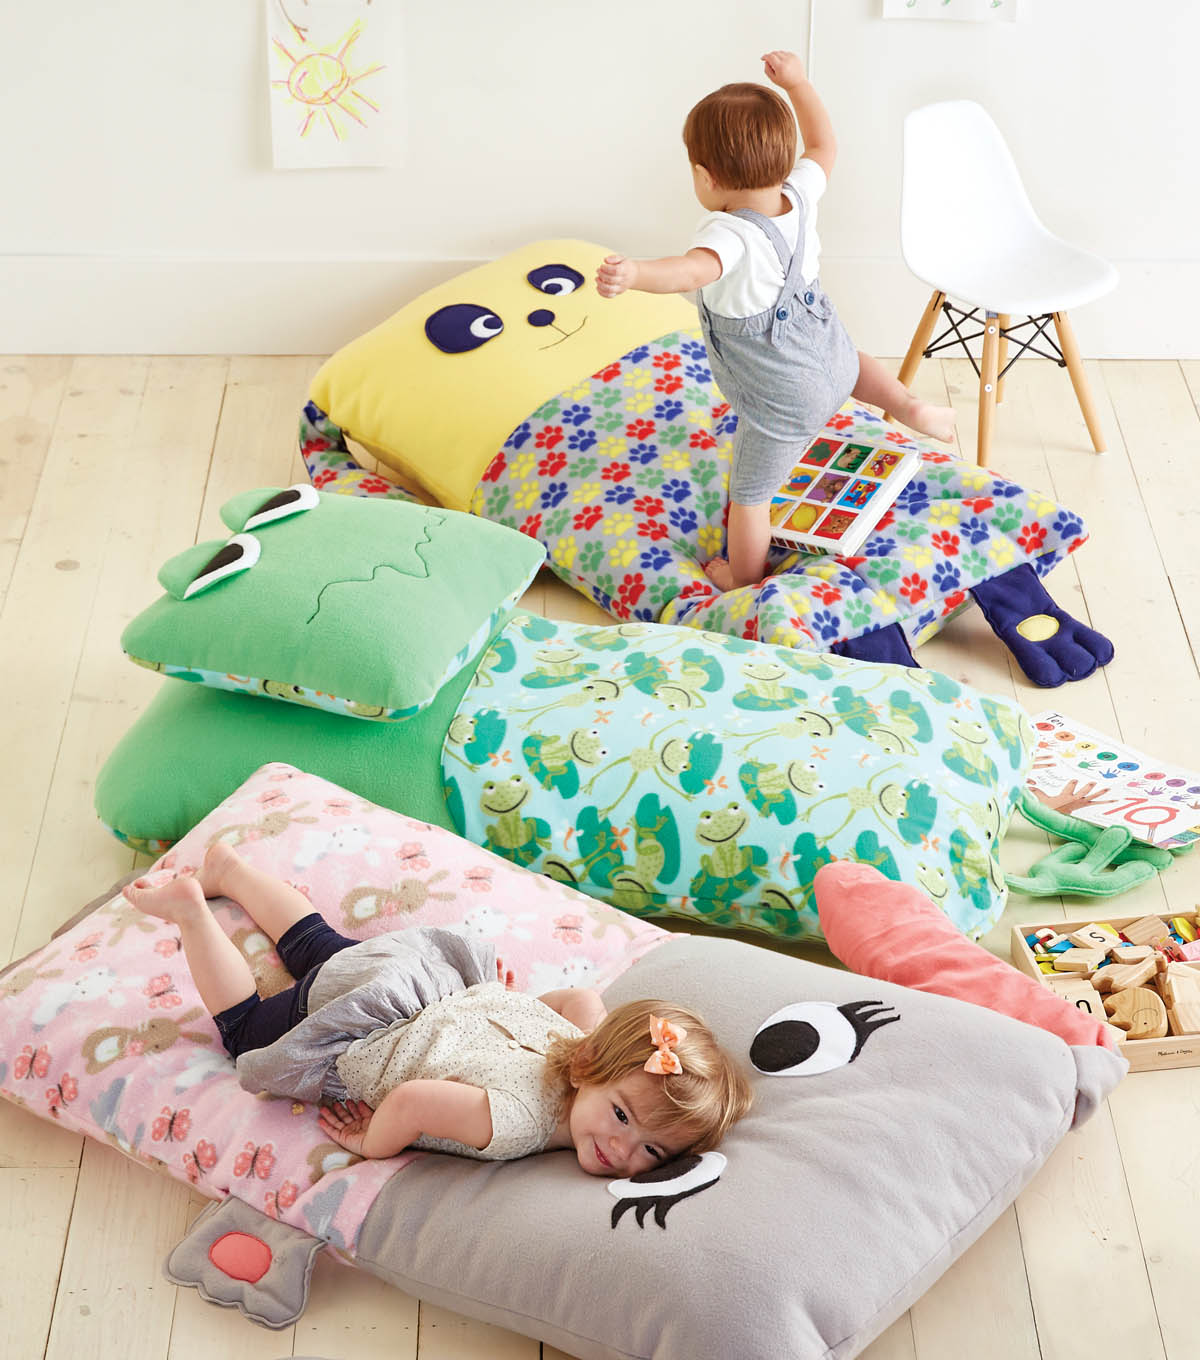 Child Floor Pillow from Joann.com